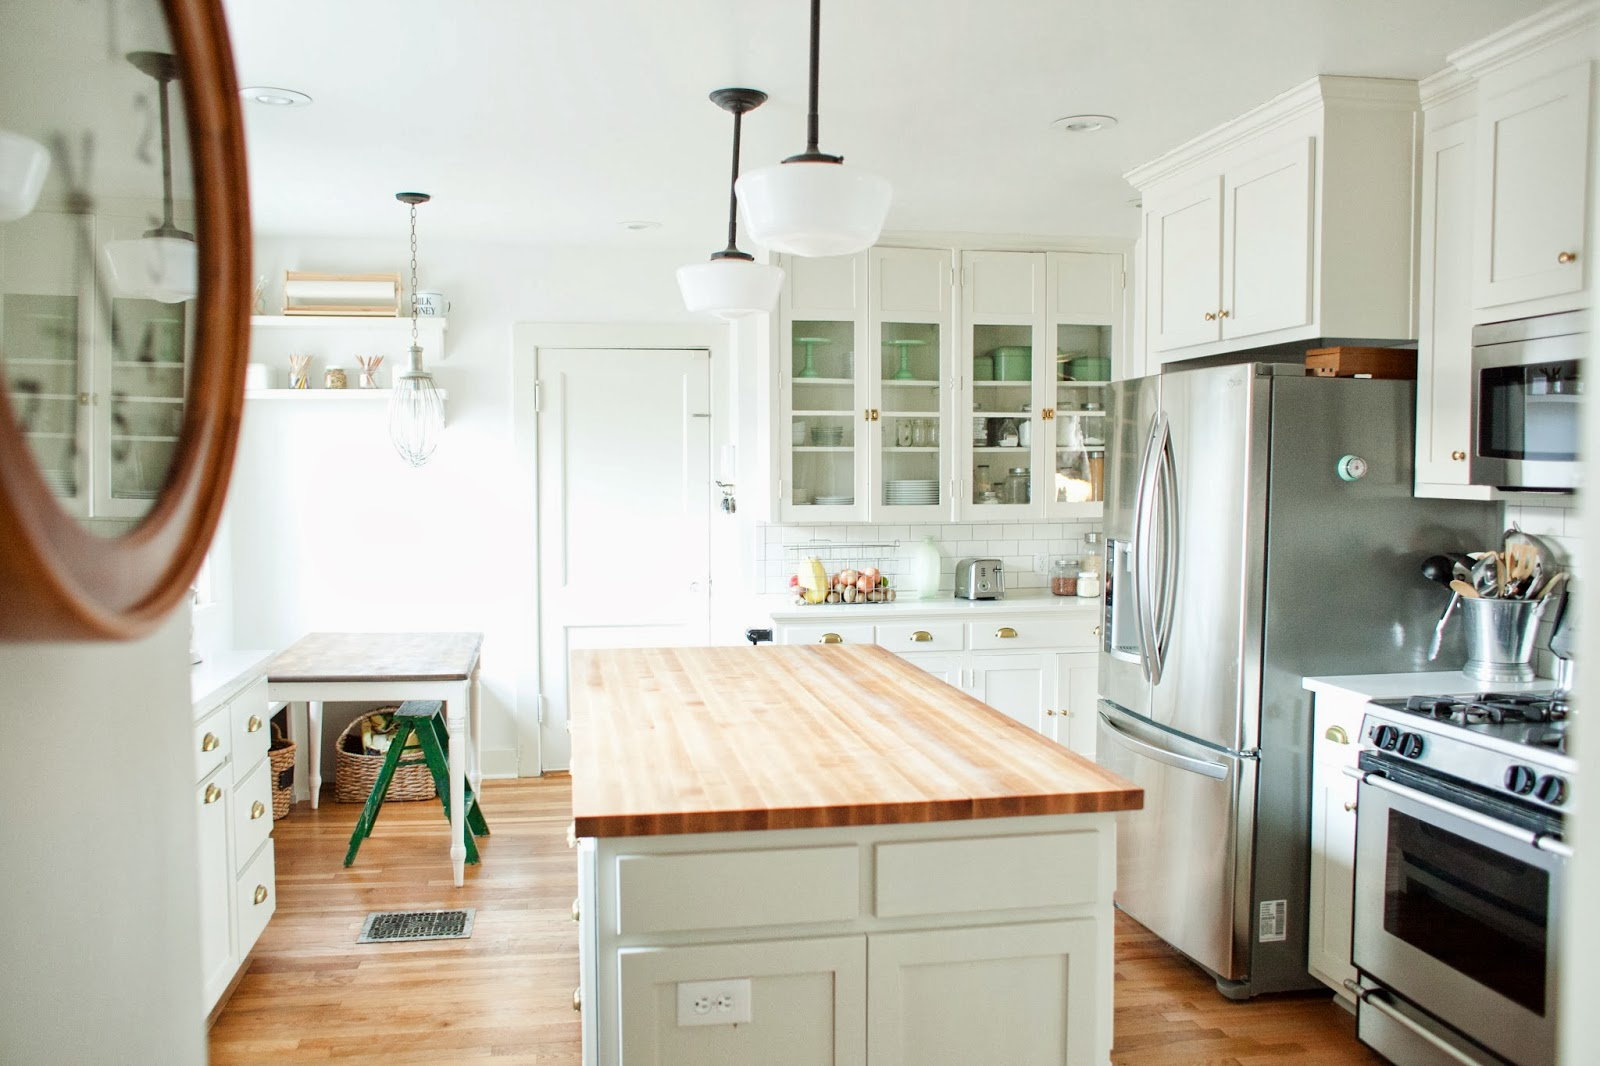 From the nato 39 s kitchen renovation before and after for Kitchen renovation ideas photos